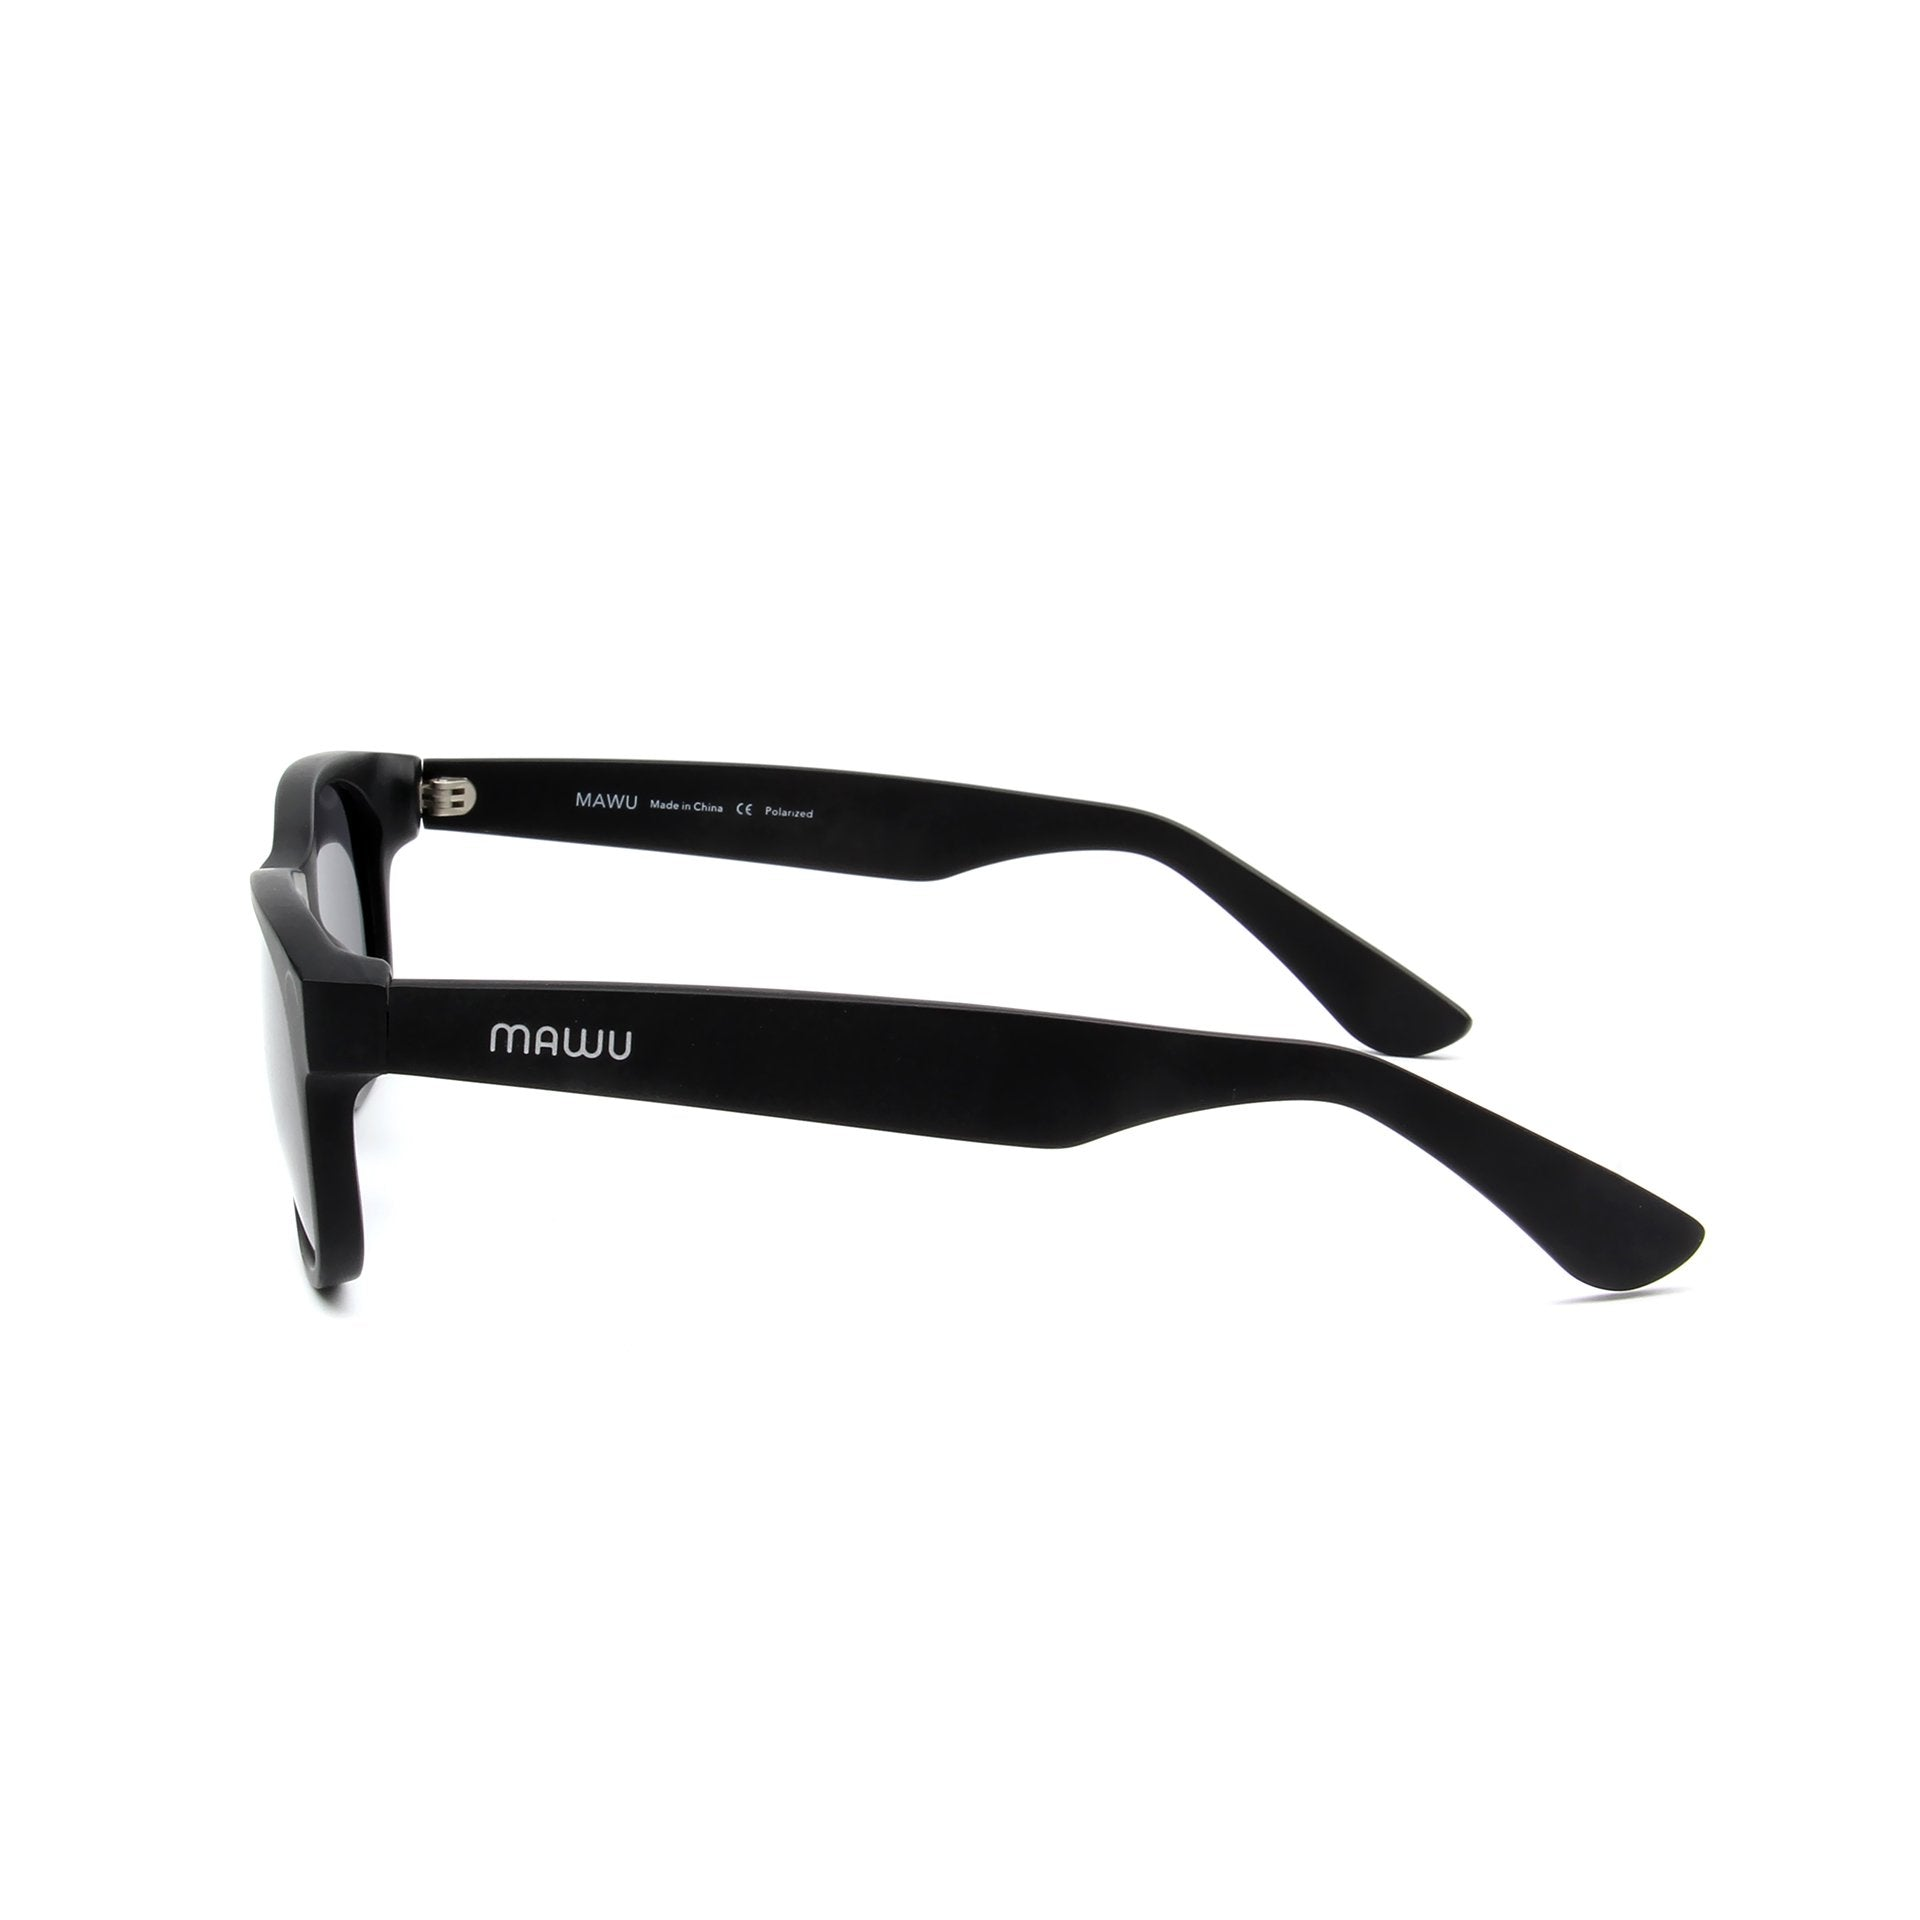 Maiao Matte Black - Side View - Grey lens - Mawu sunglasses